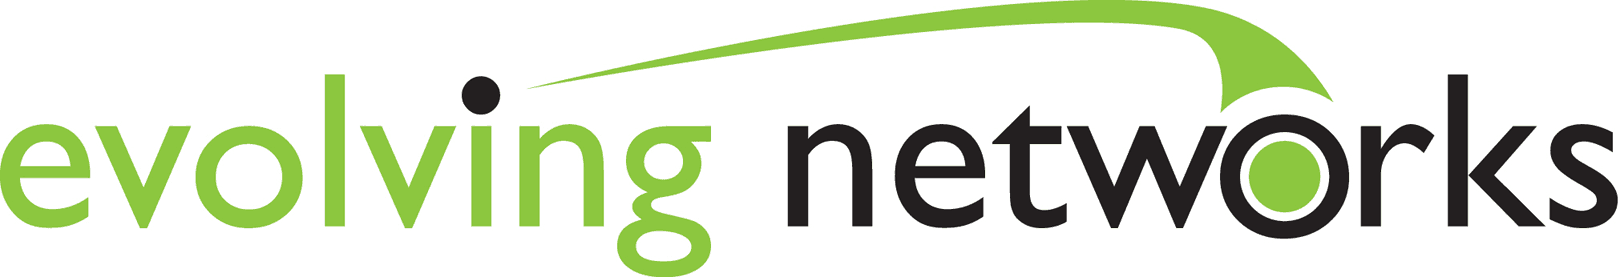 Evolving Networks logo